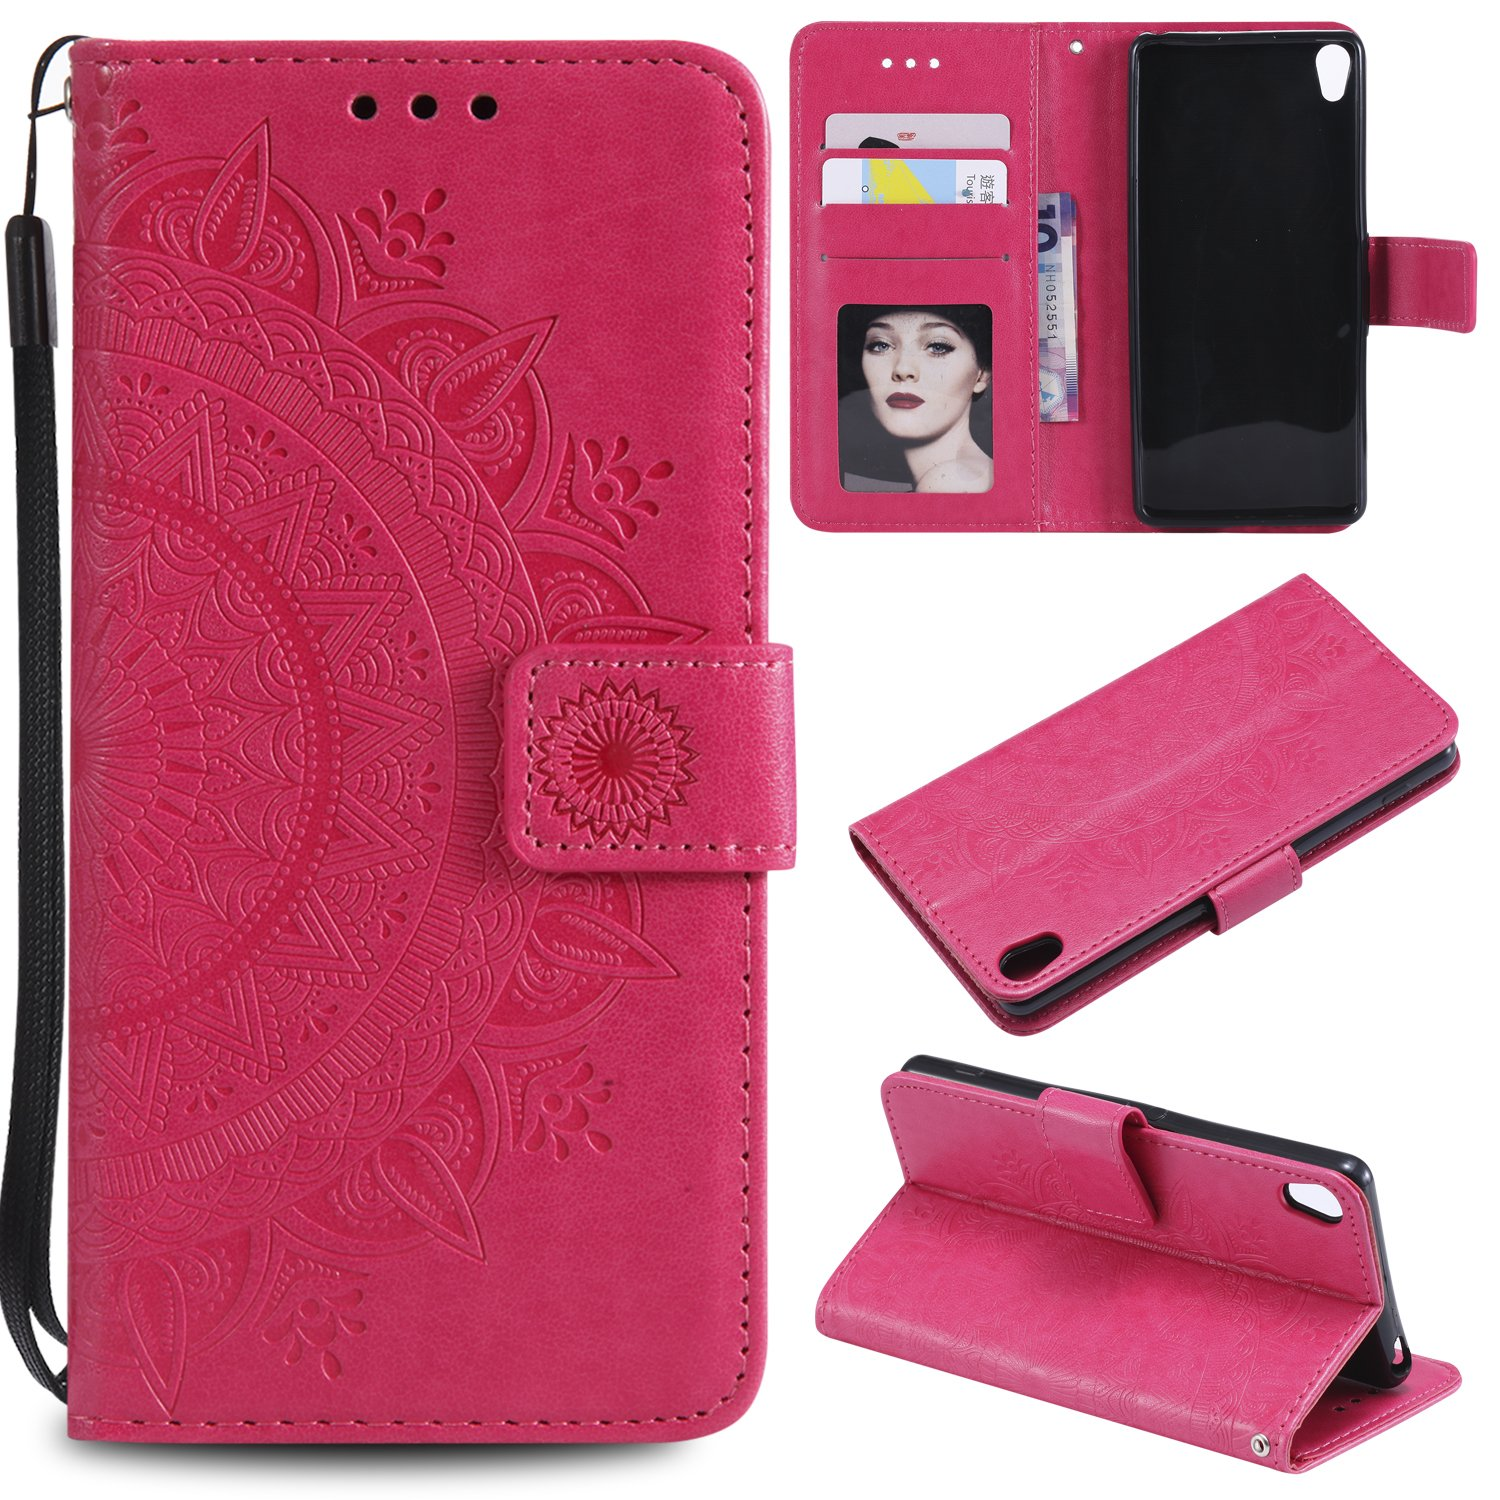 Sony Xperia XA1 Case [Totem Flower], Lomogo Leather Wallet Case with Kickstand Card Holder Shockproof Flip Case Cover for Sony Xperia XA1 - LOHHA10780 Rose Gold